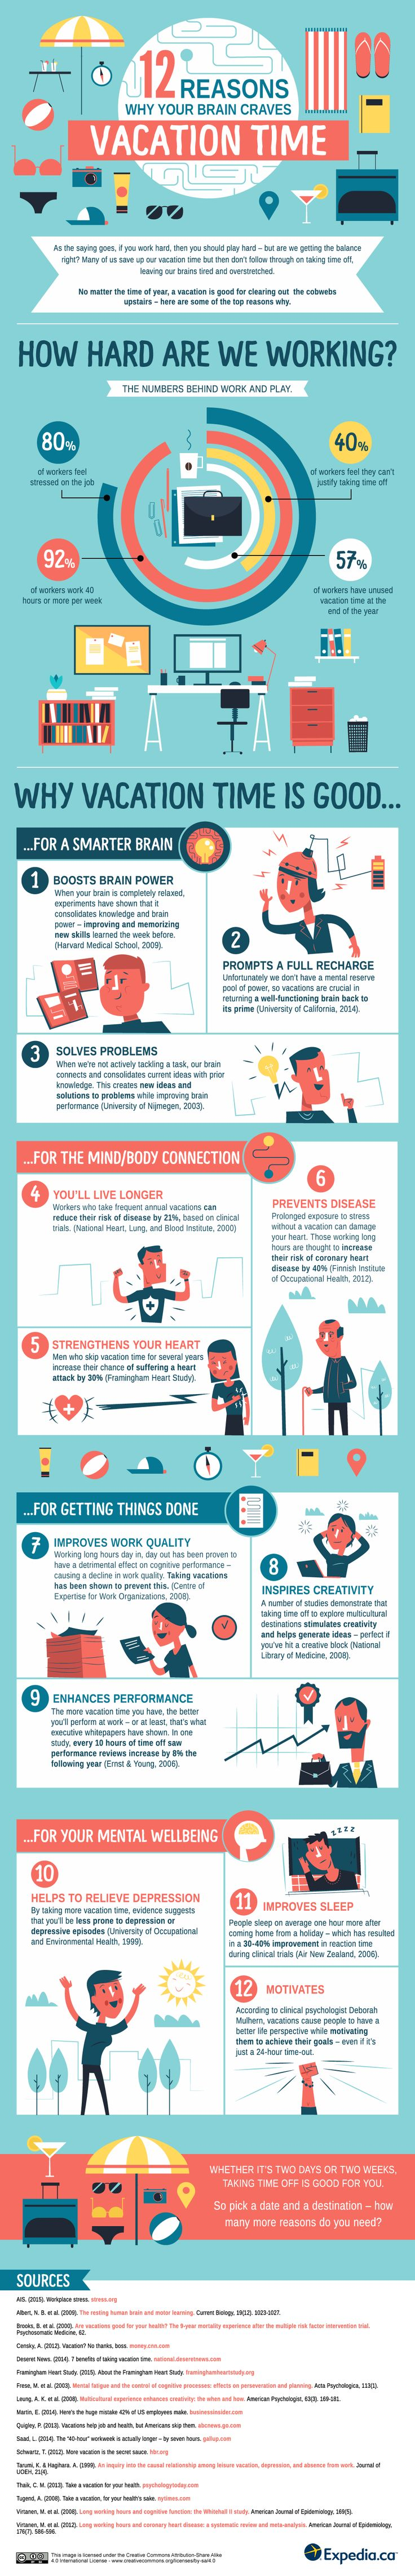 12 Reasons Why Your Brain Craves Vacation #Infographic #Health